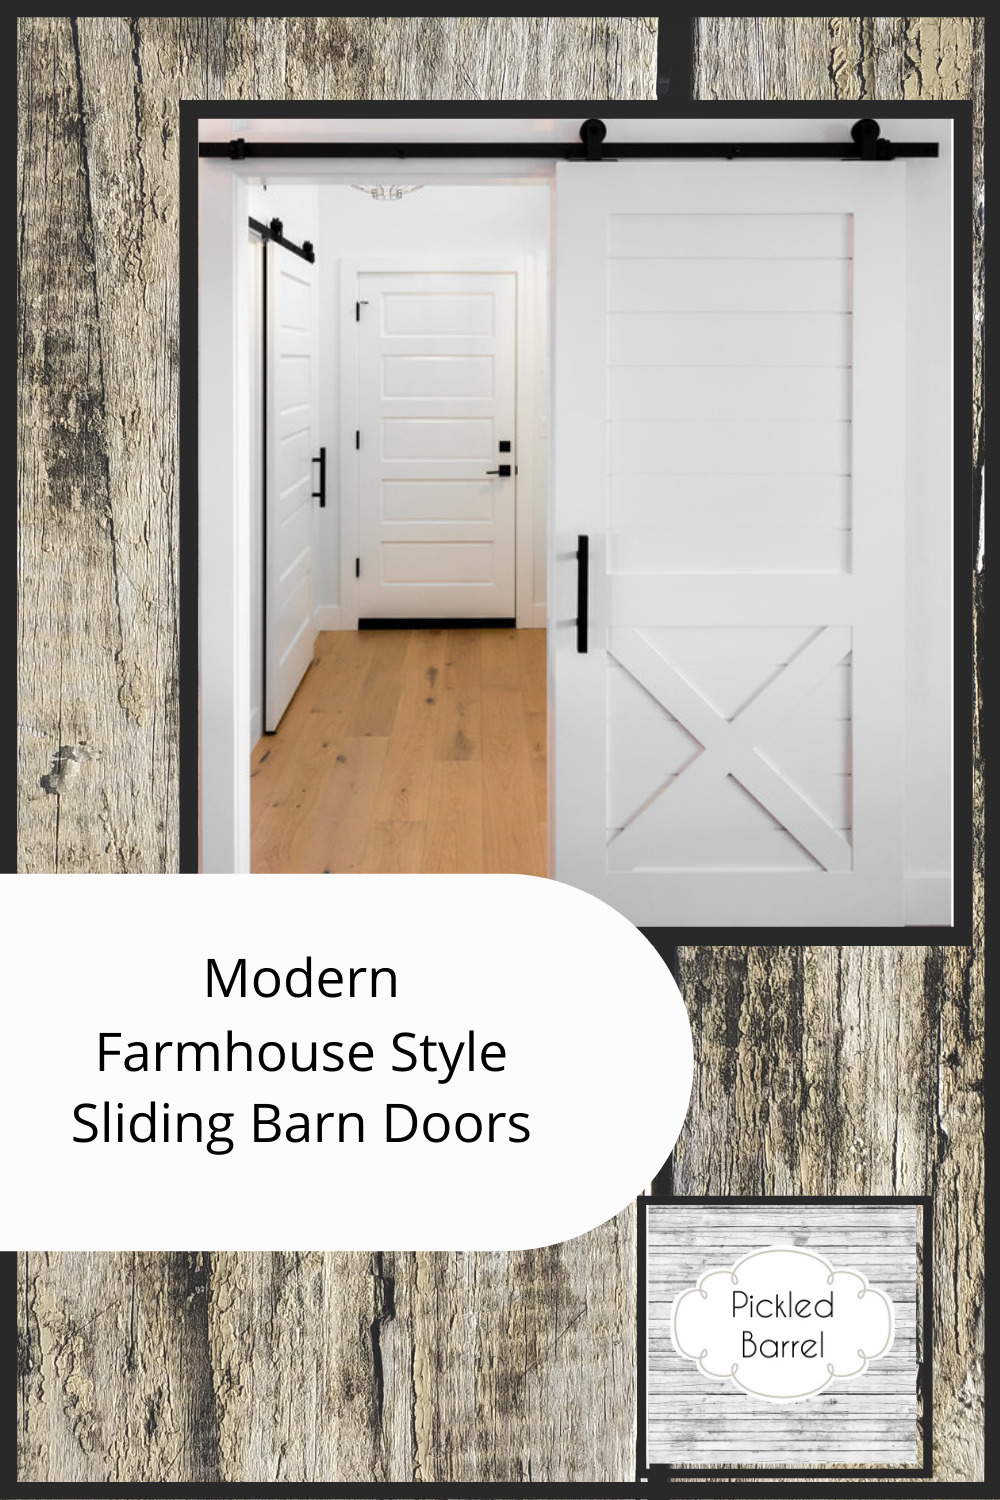 Pickledbarrel.com has all the best ideas and inspo for modern farmhouse style decor. Channel quaint but sleek vibes in your home with tons of styling tips. Sliding barn doors are the perfect way to tie your style together; check out these ideas today!